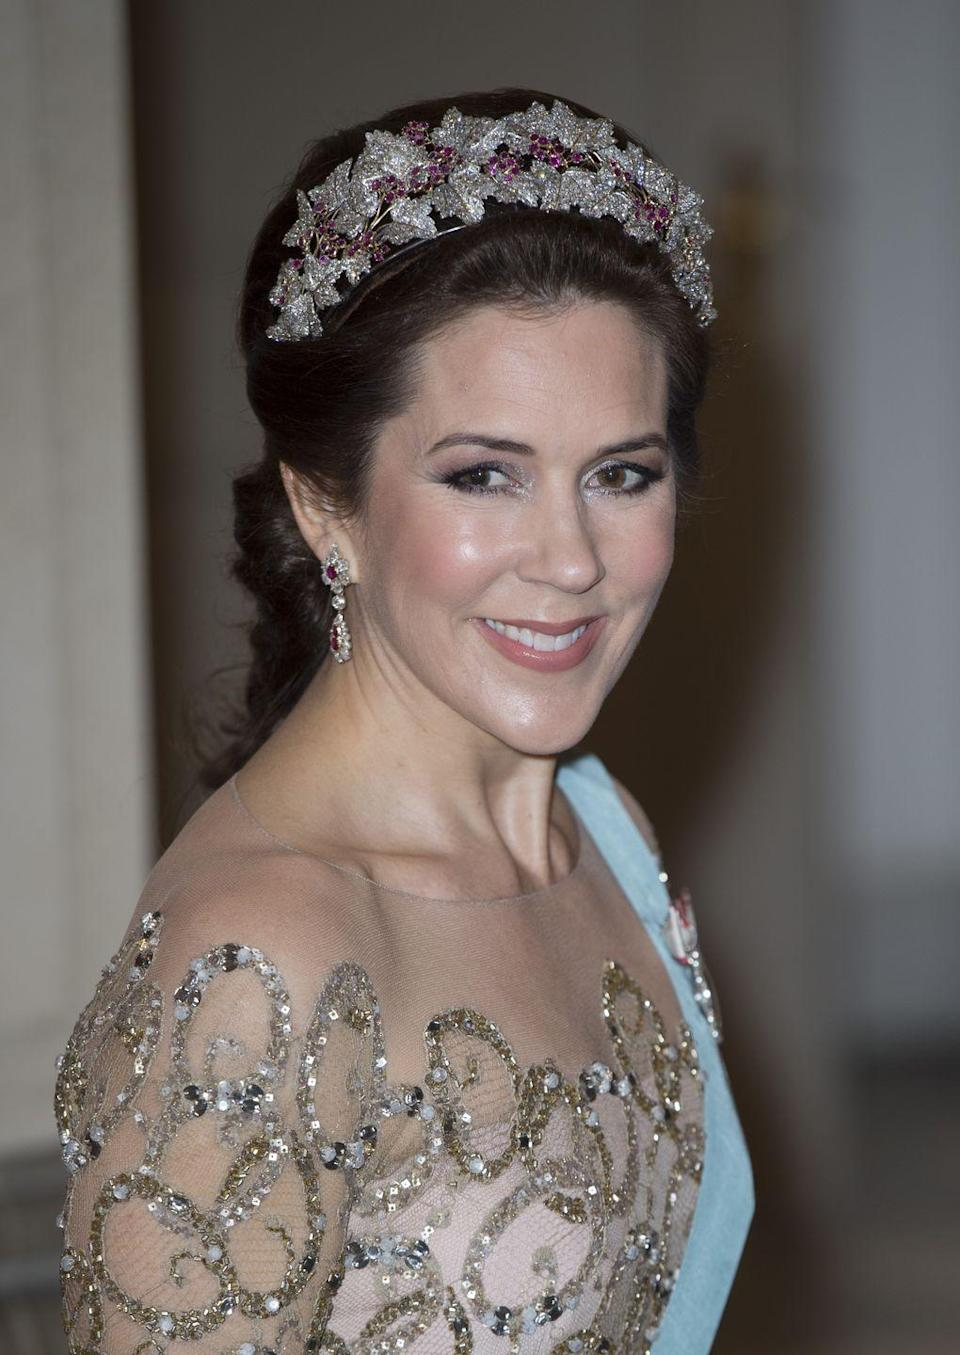 """<p>Nothing says """"princess"""" like a ruby-and-diamond-encrusted tiara, especially one that dates back two centuries. According to royal gem-watching blog, <a href=""""http://www.thecourtjeweller.com/2016/08/the-danish-ruby-parure-tiara.html"""" rel=""""nofollow noopener"""" target=""""_blank"""" data-ylk=""""slk:The Court Jeweller"""" class=""""link rapid-noclick-resp"""">The Court Jeweller</a>, the gems were first worn by a royal lady close to Napoleon. The jewels made several passes through a few different countries via royal weddings, eventually ending up in Denmark. Wearing the tiara is a nod to the long tradition that connects generations of European royalty. </p>"""